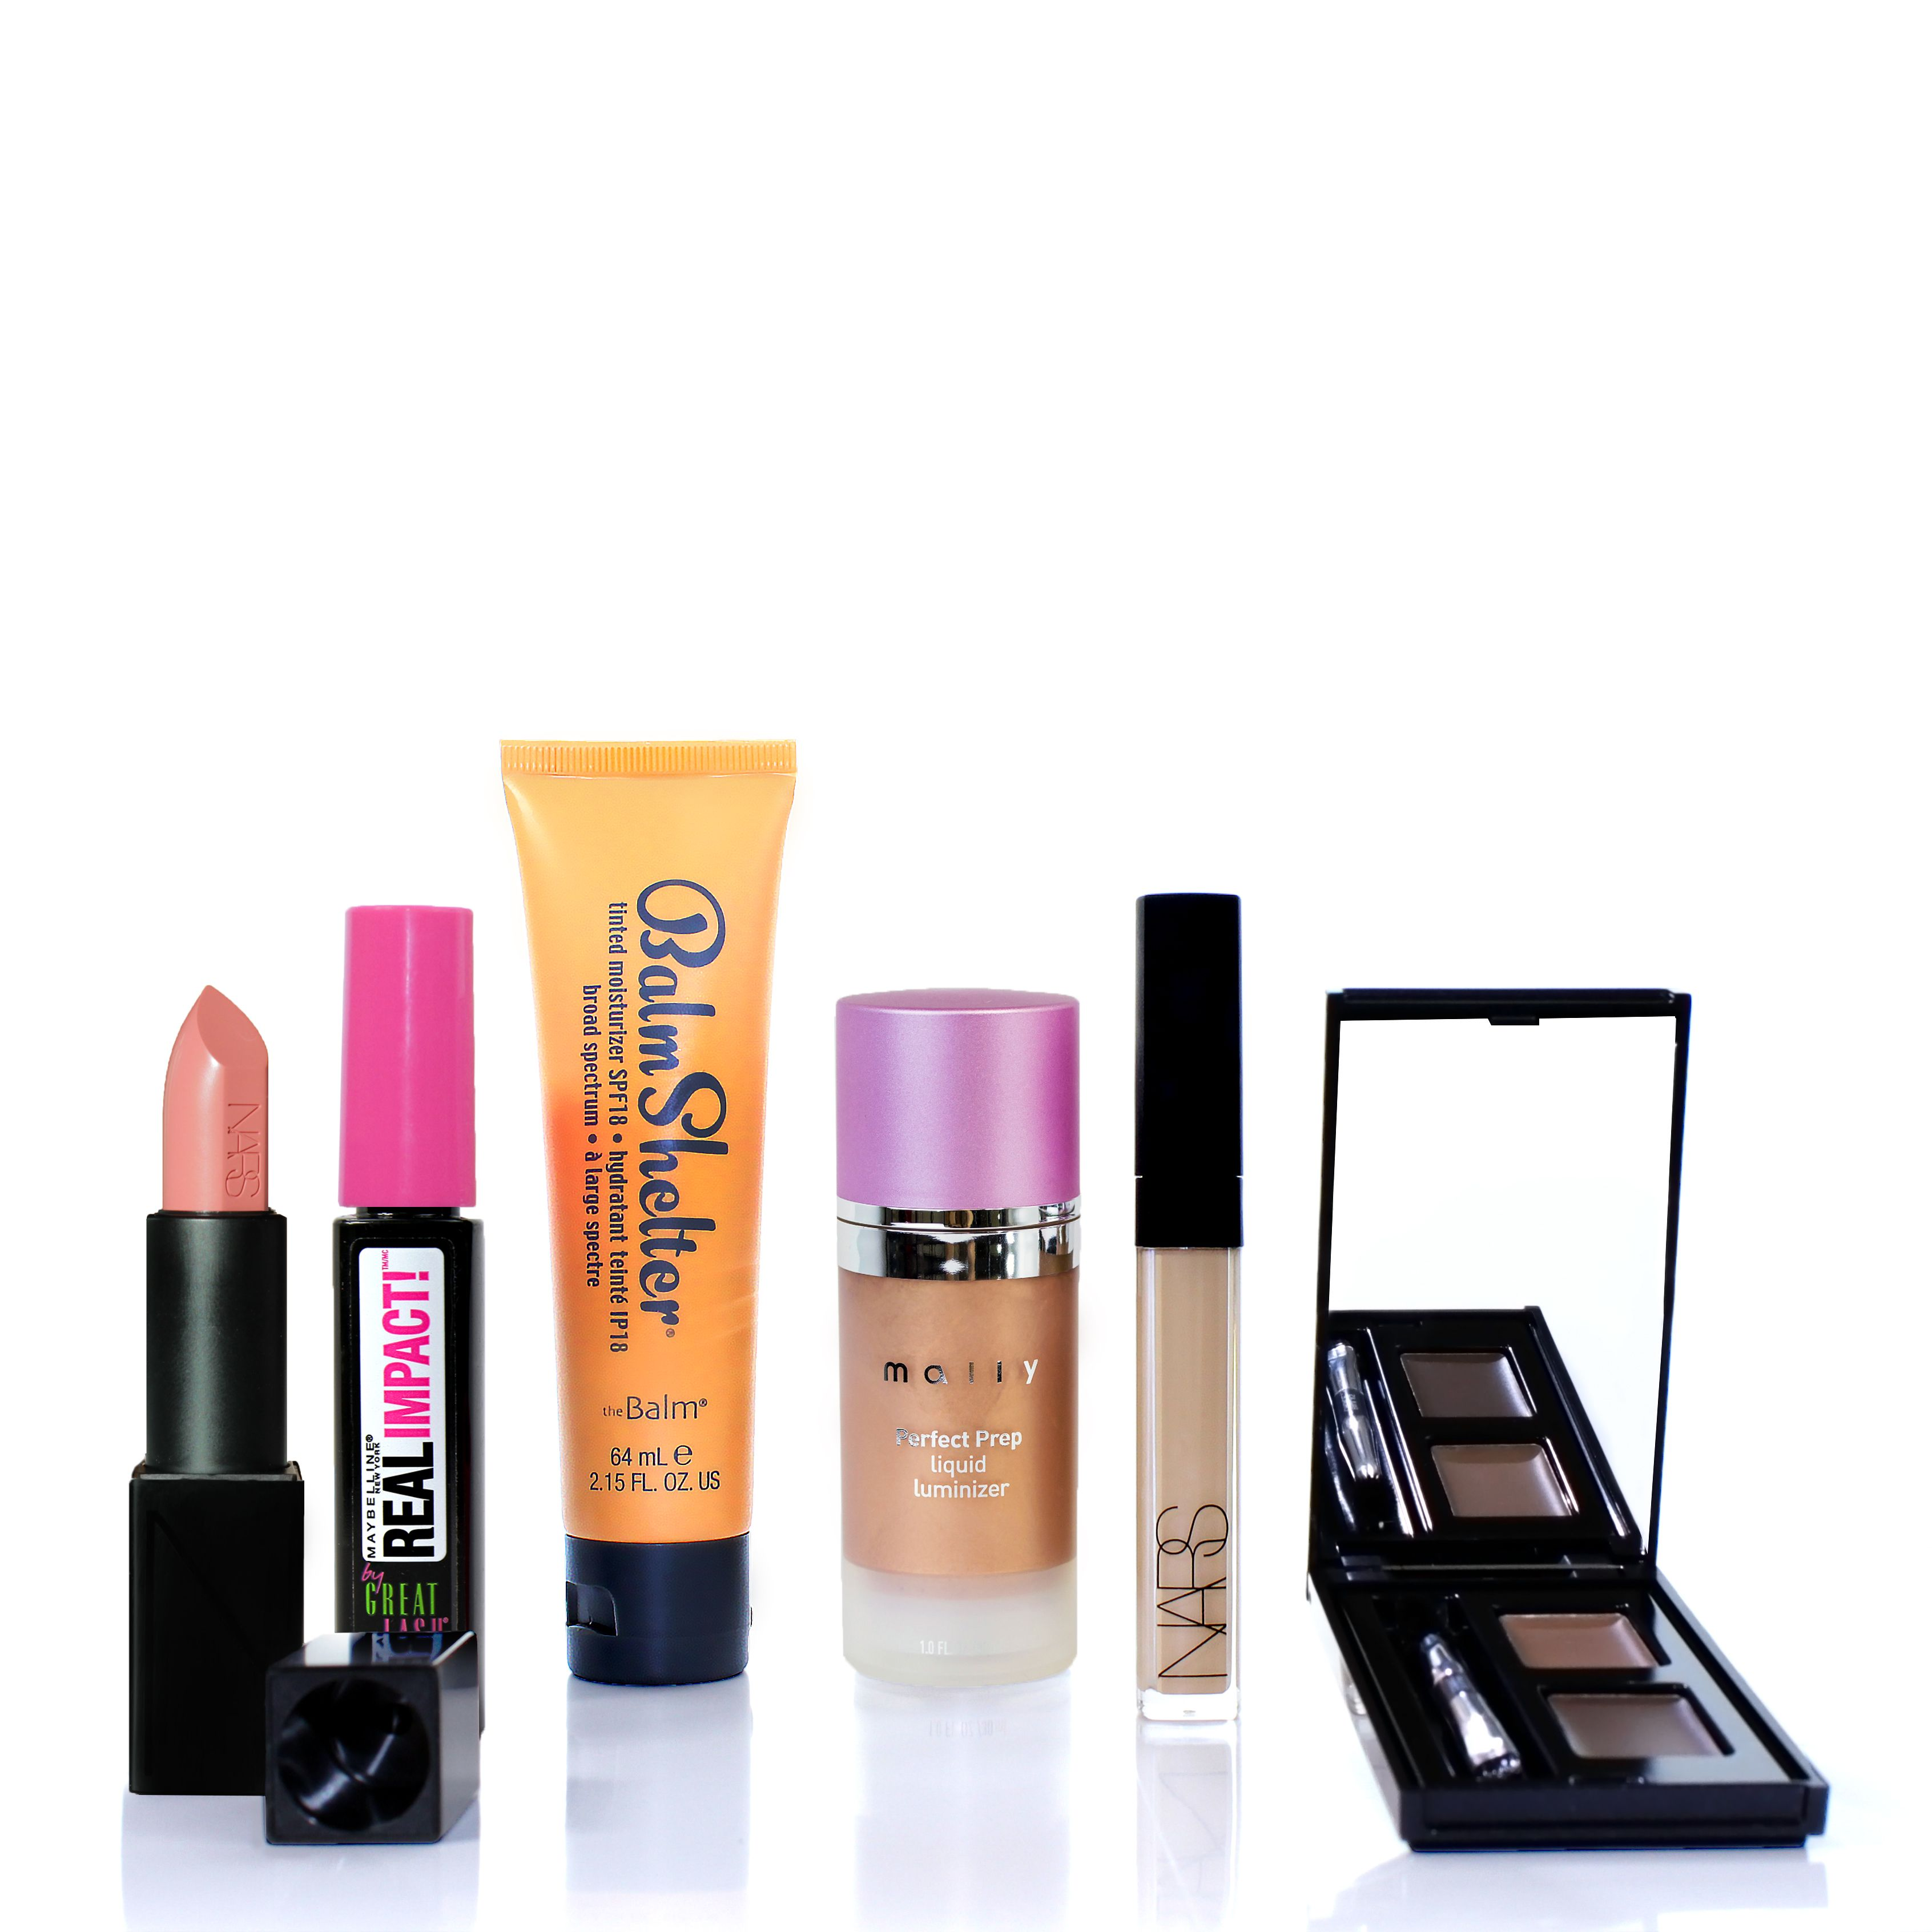 Beautypedia Review's Best and Worst Makeup Products of